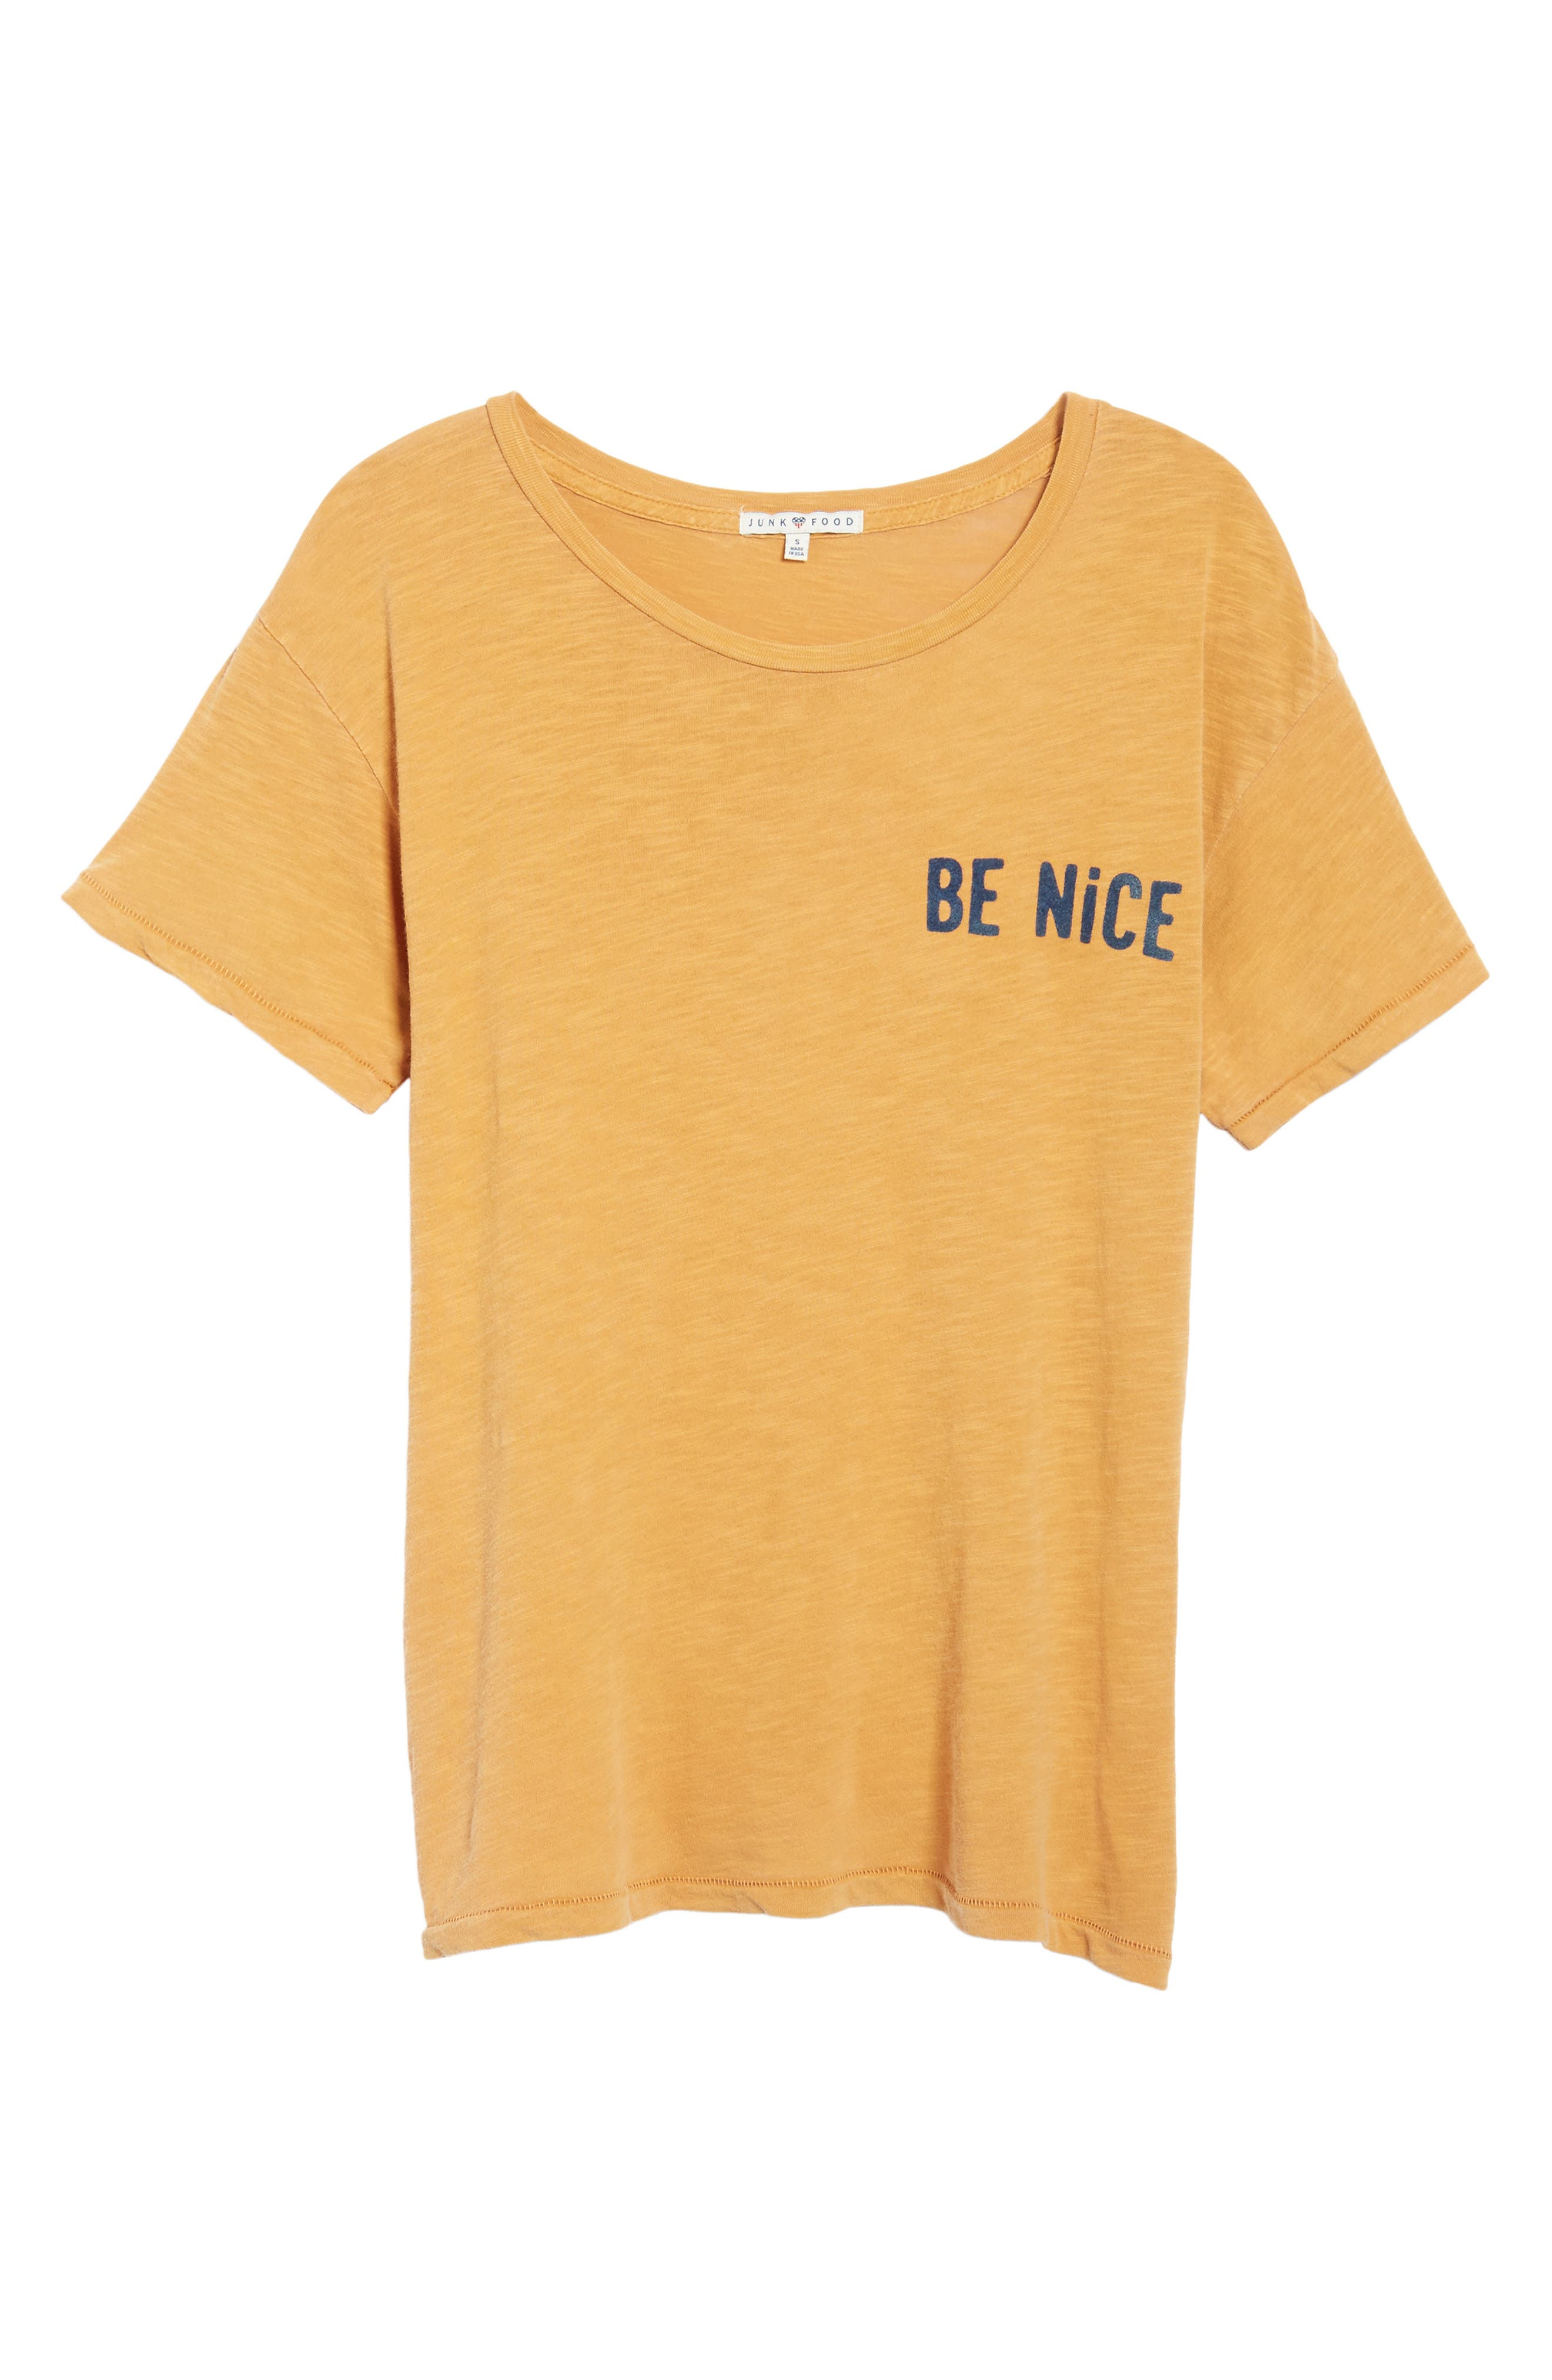 Be Nice Tee,                             Alternate thumbnail 6, color,                             Amber